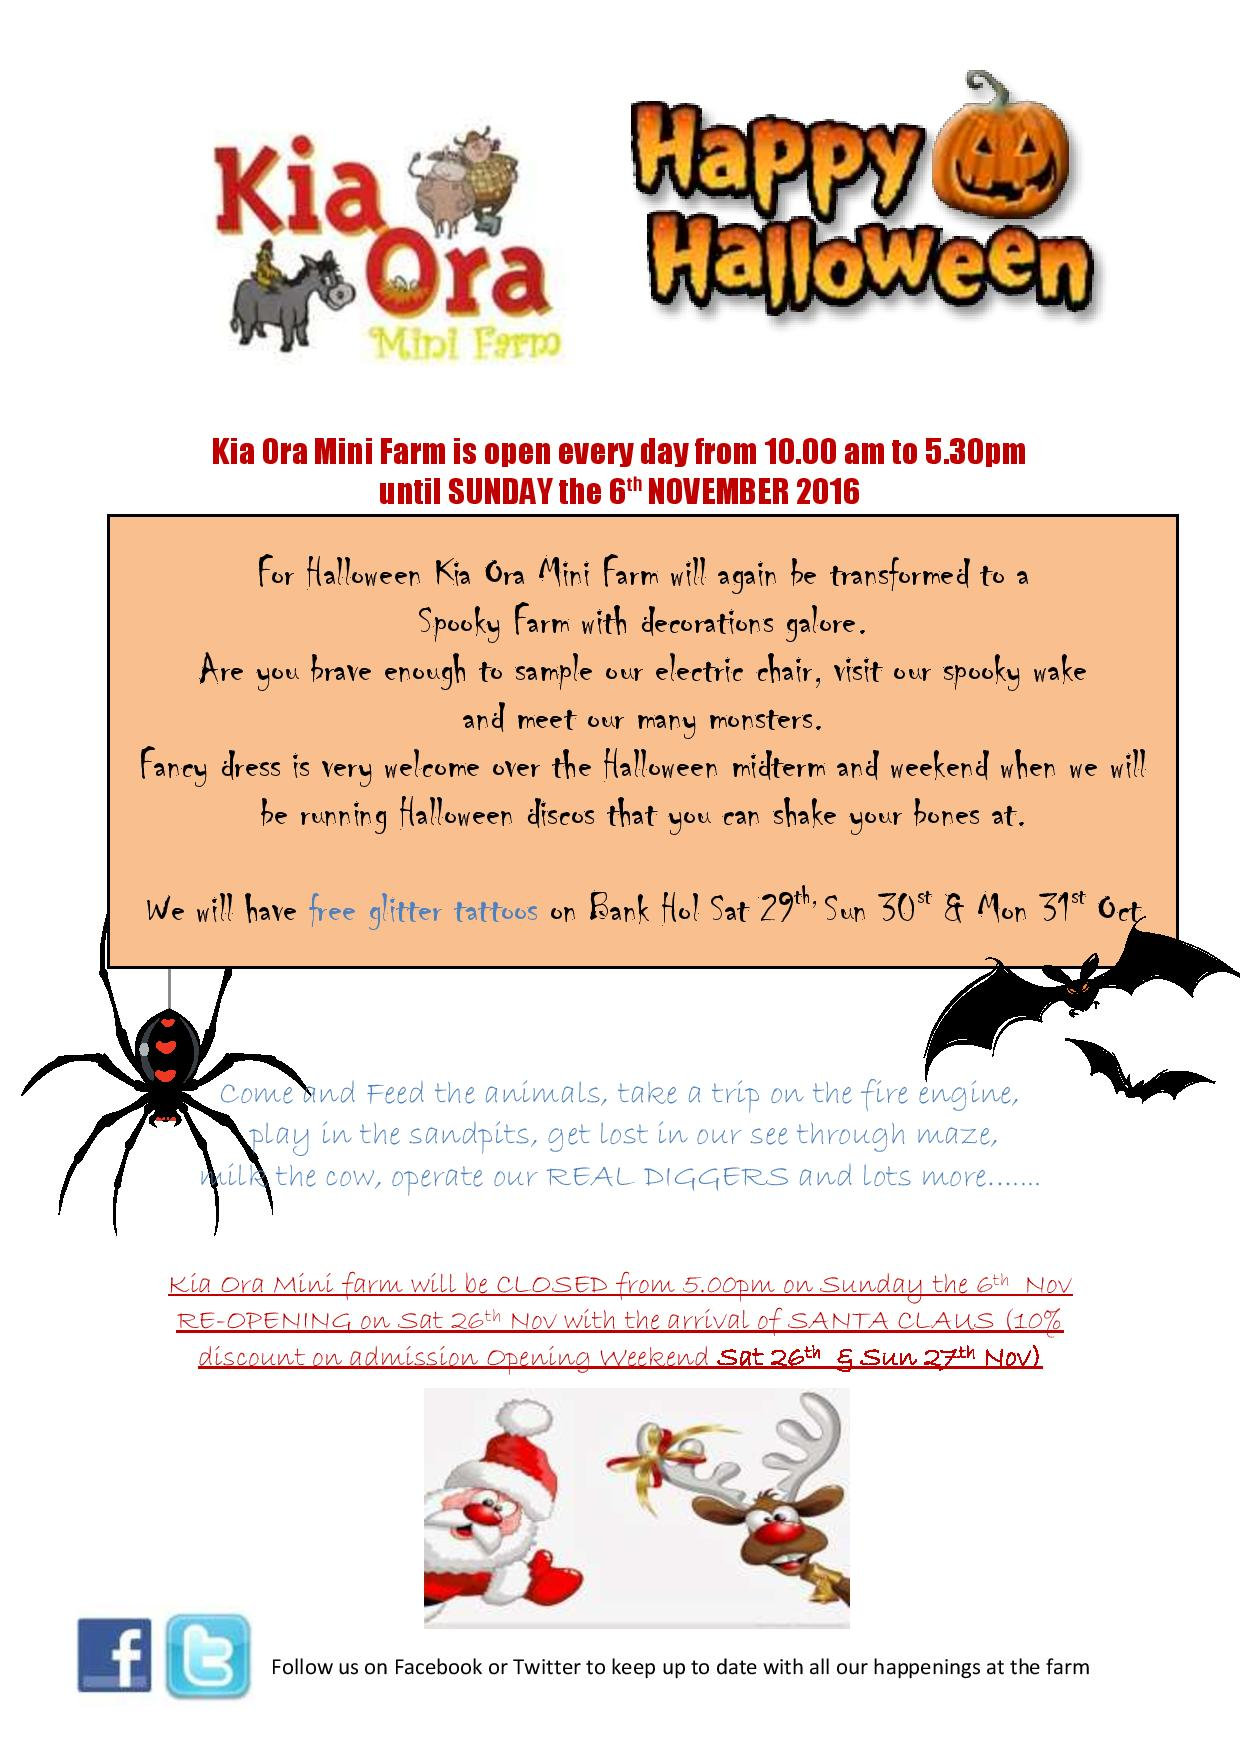 HALLOWEEN POSTER. 2016 Kia ora mini farm